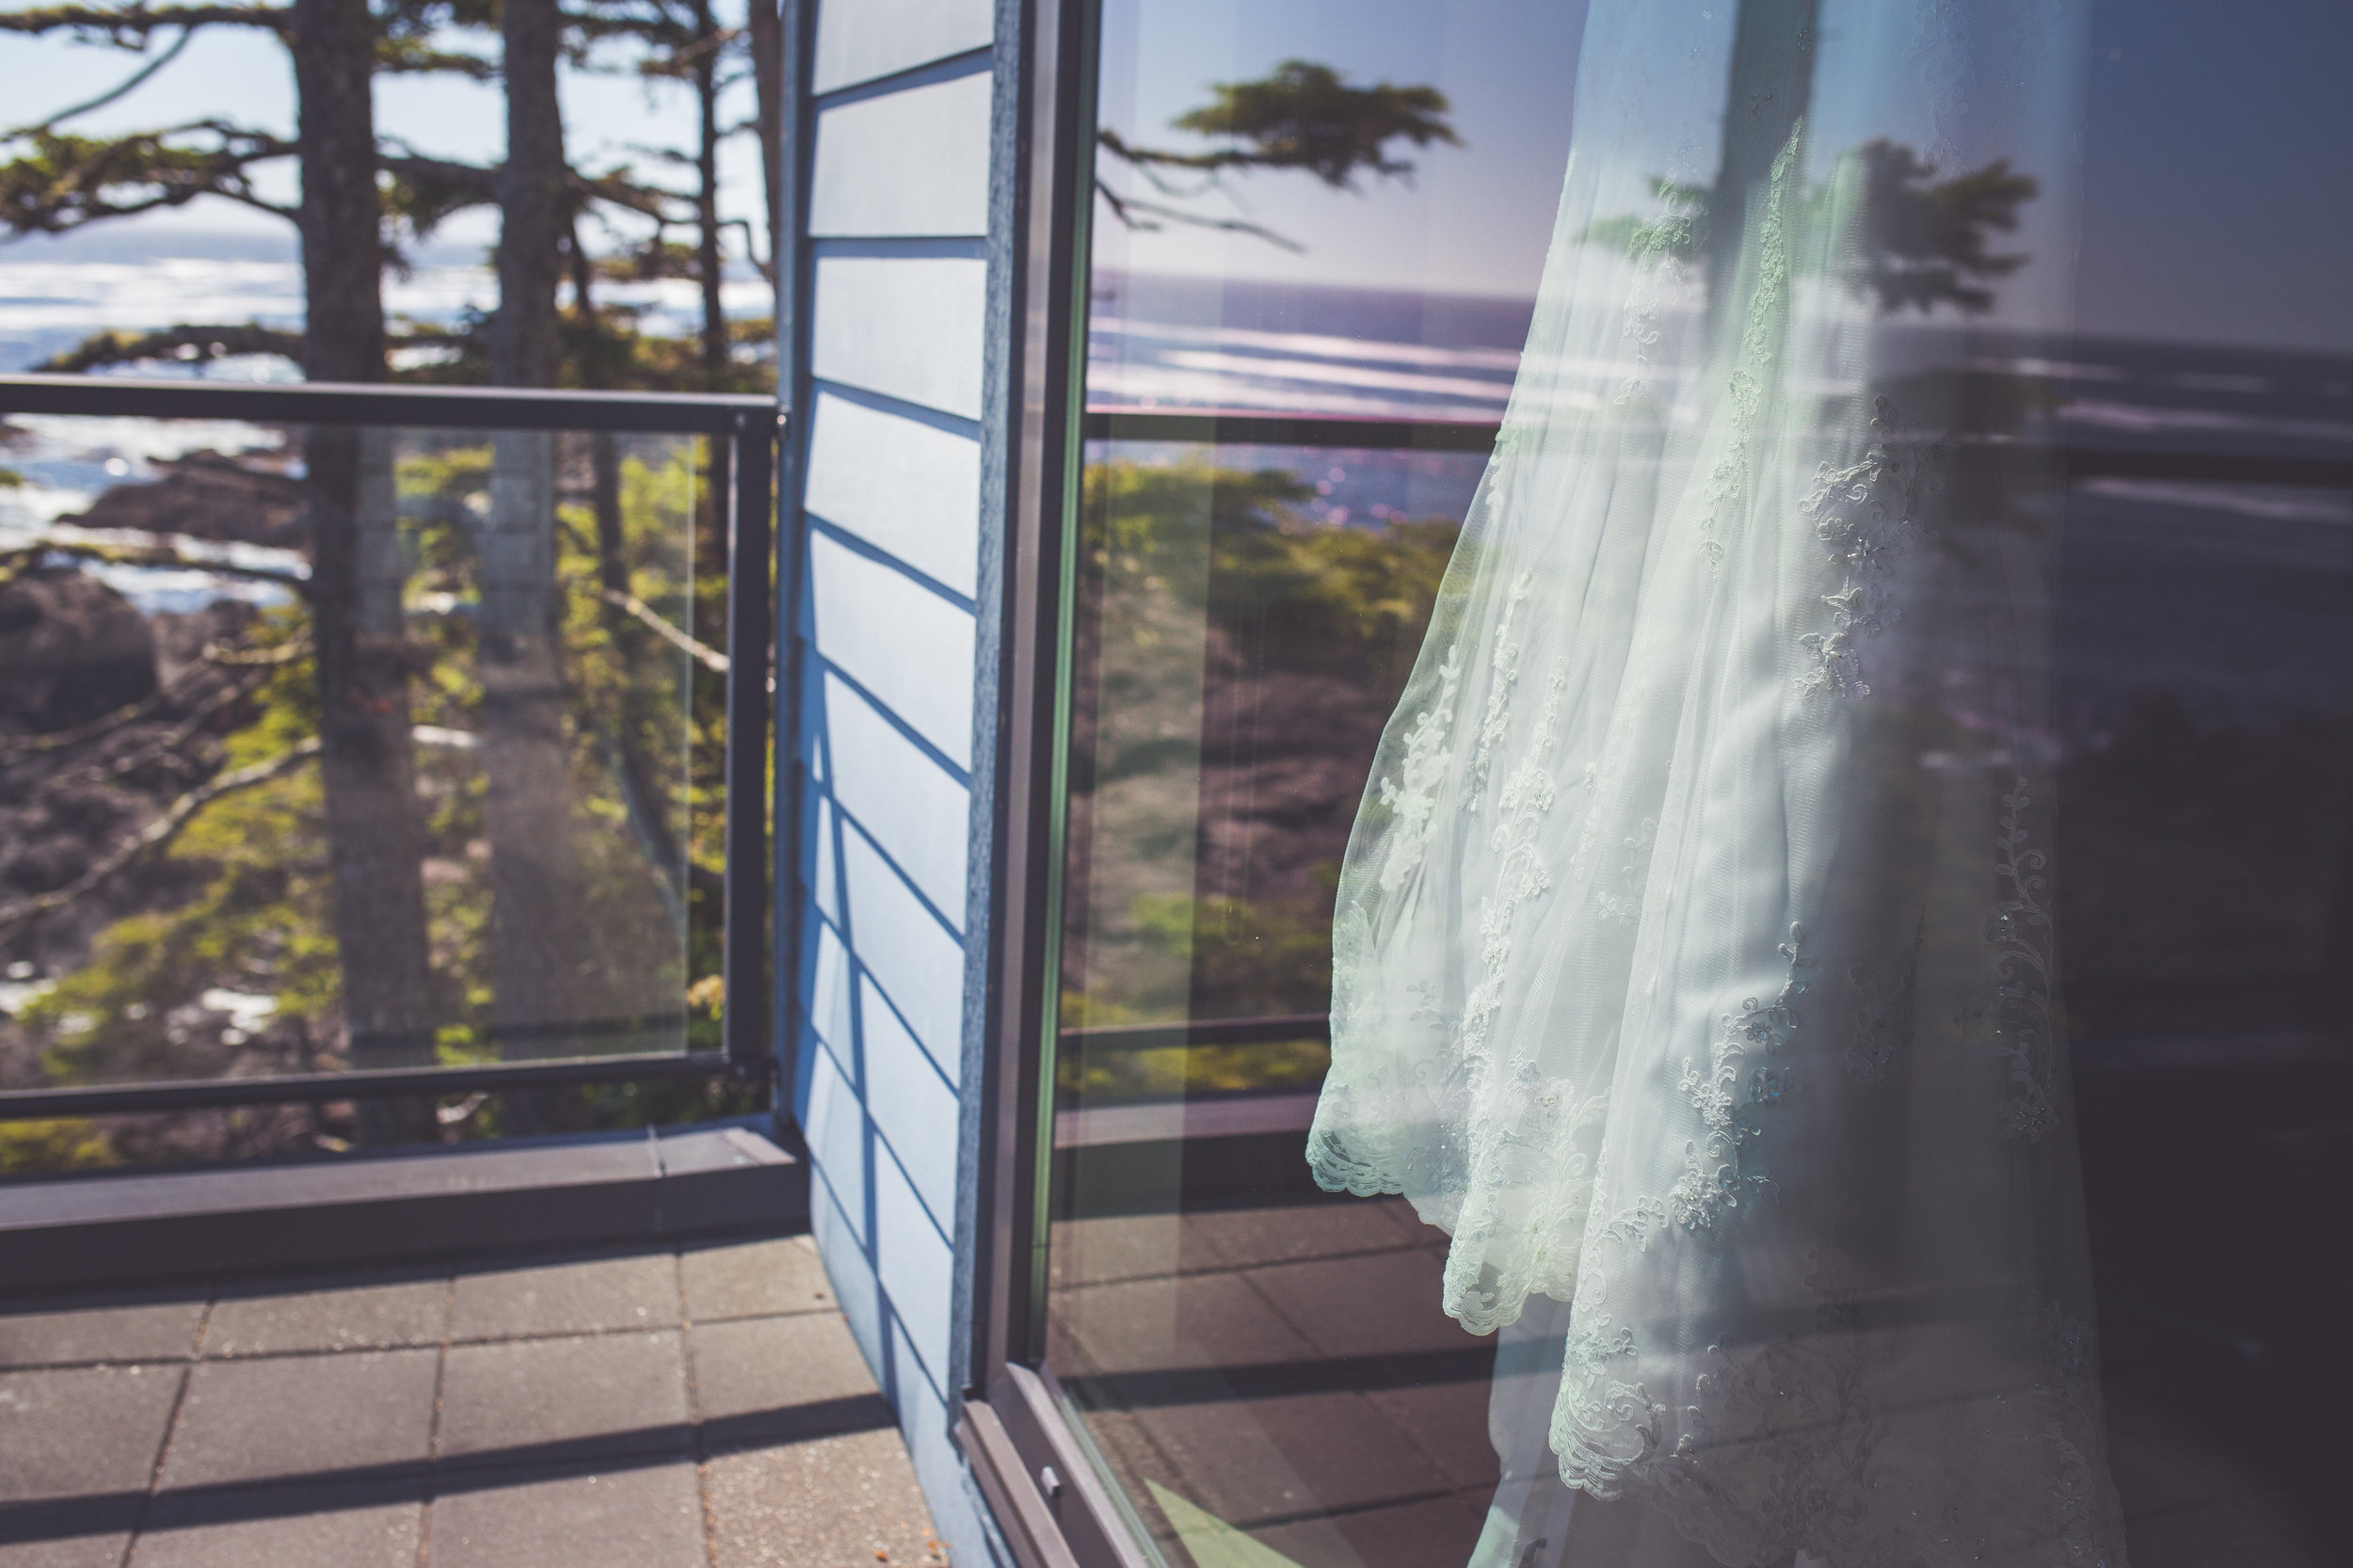 black-rock-oceanfront-resort-weddings-ucluelet-bc-courtney-jake-113.jpg